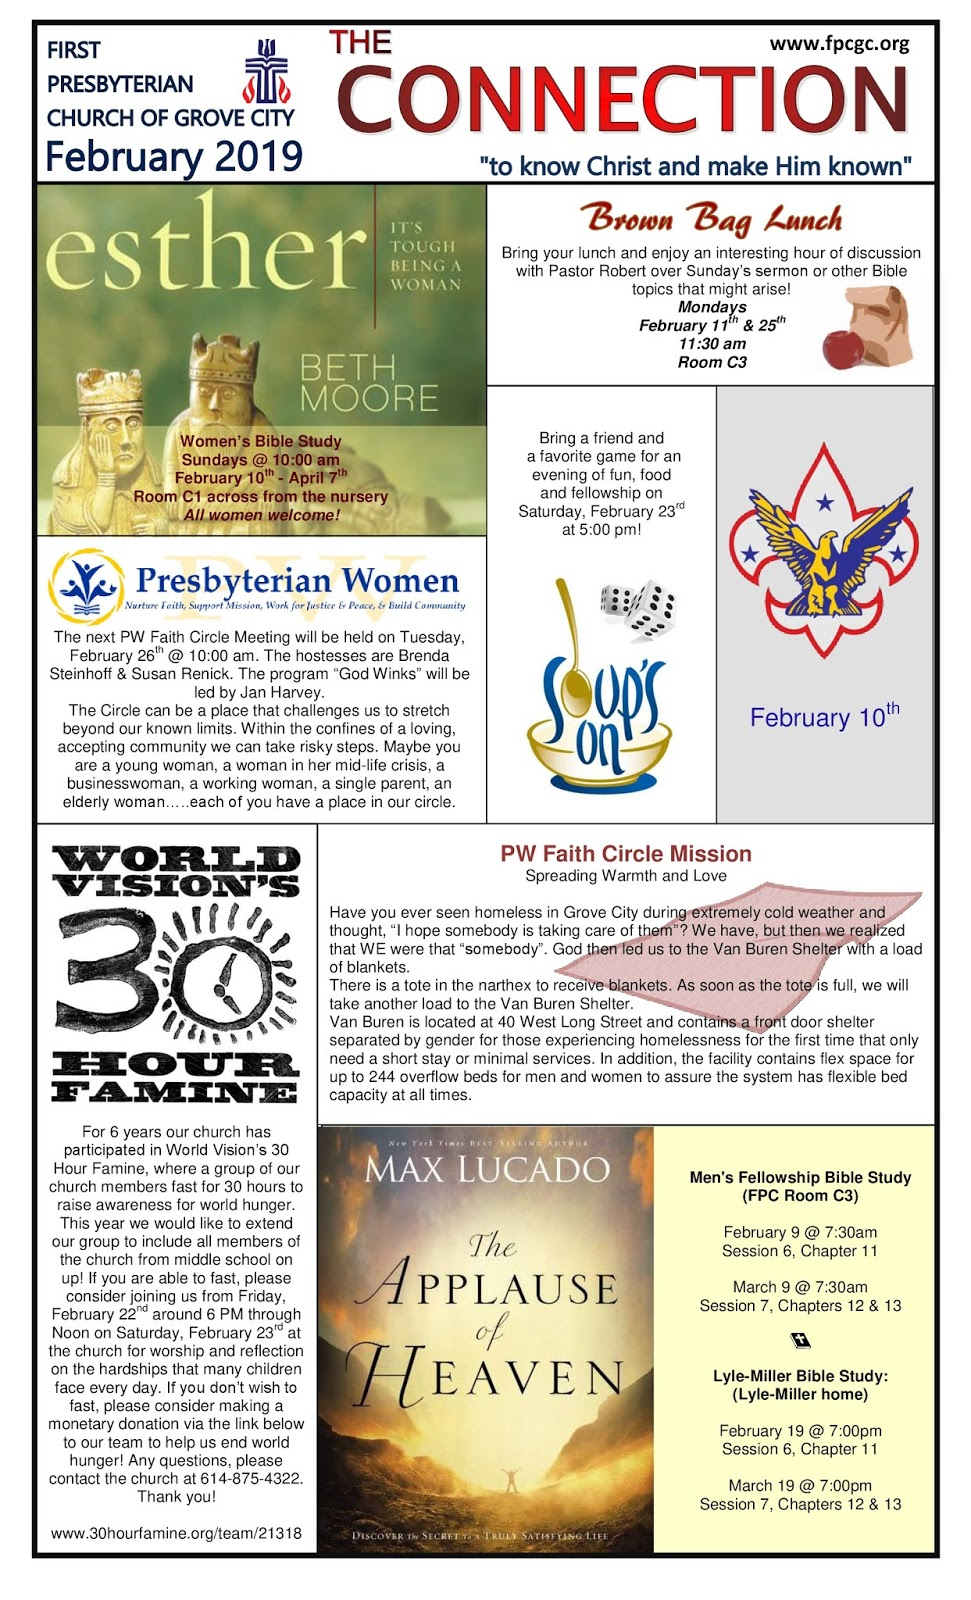 First Presbyterian Church of Grove City: Our Monthly Newsletter: The